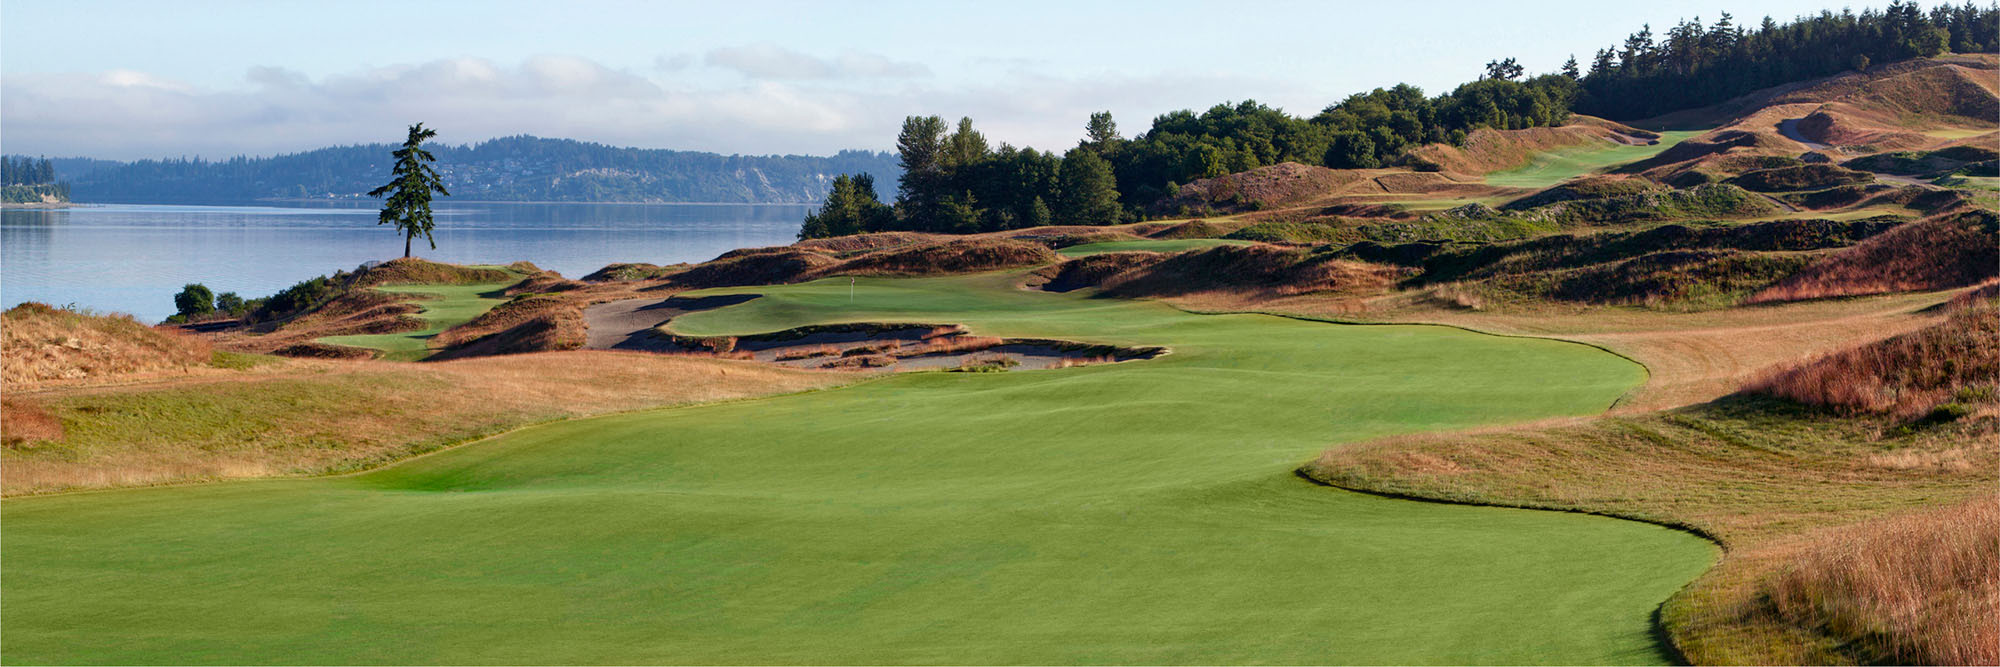 Golf Course Image - Chambers Bay No. 2